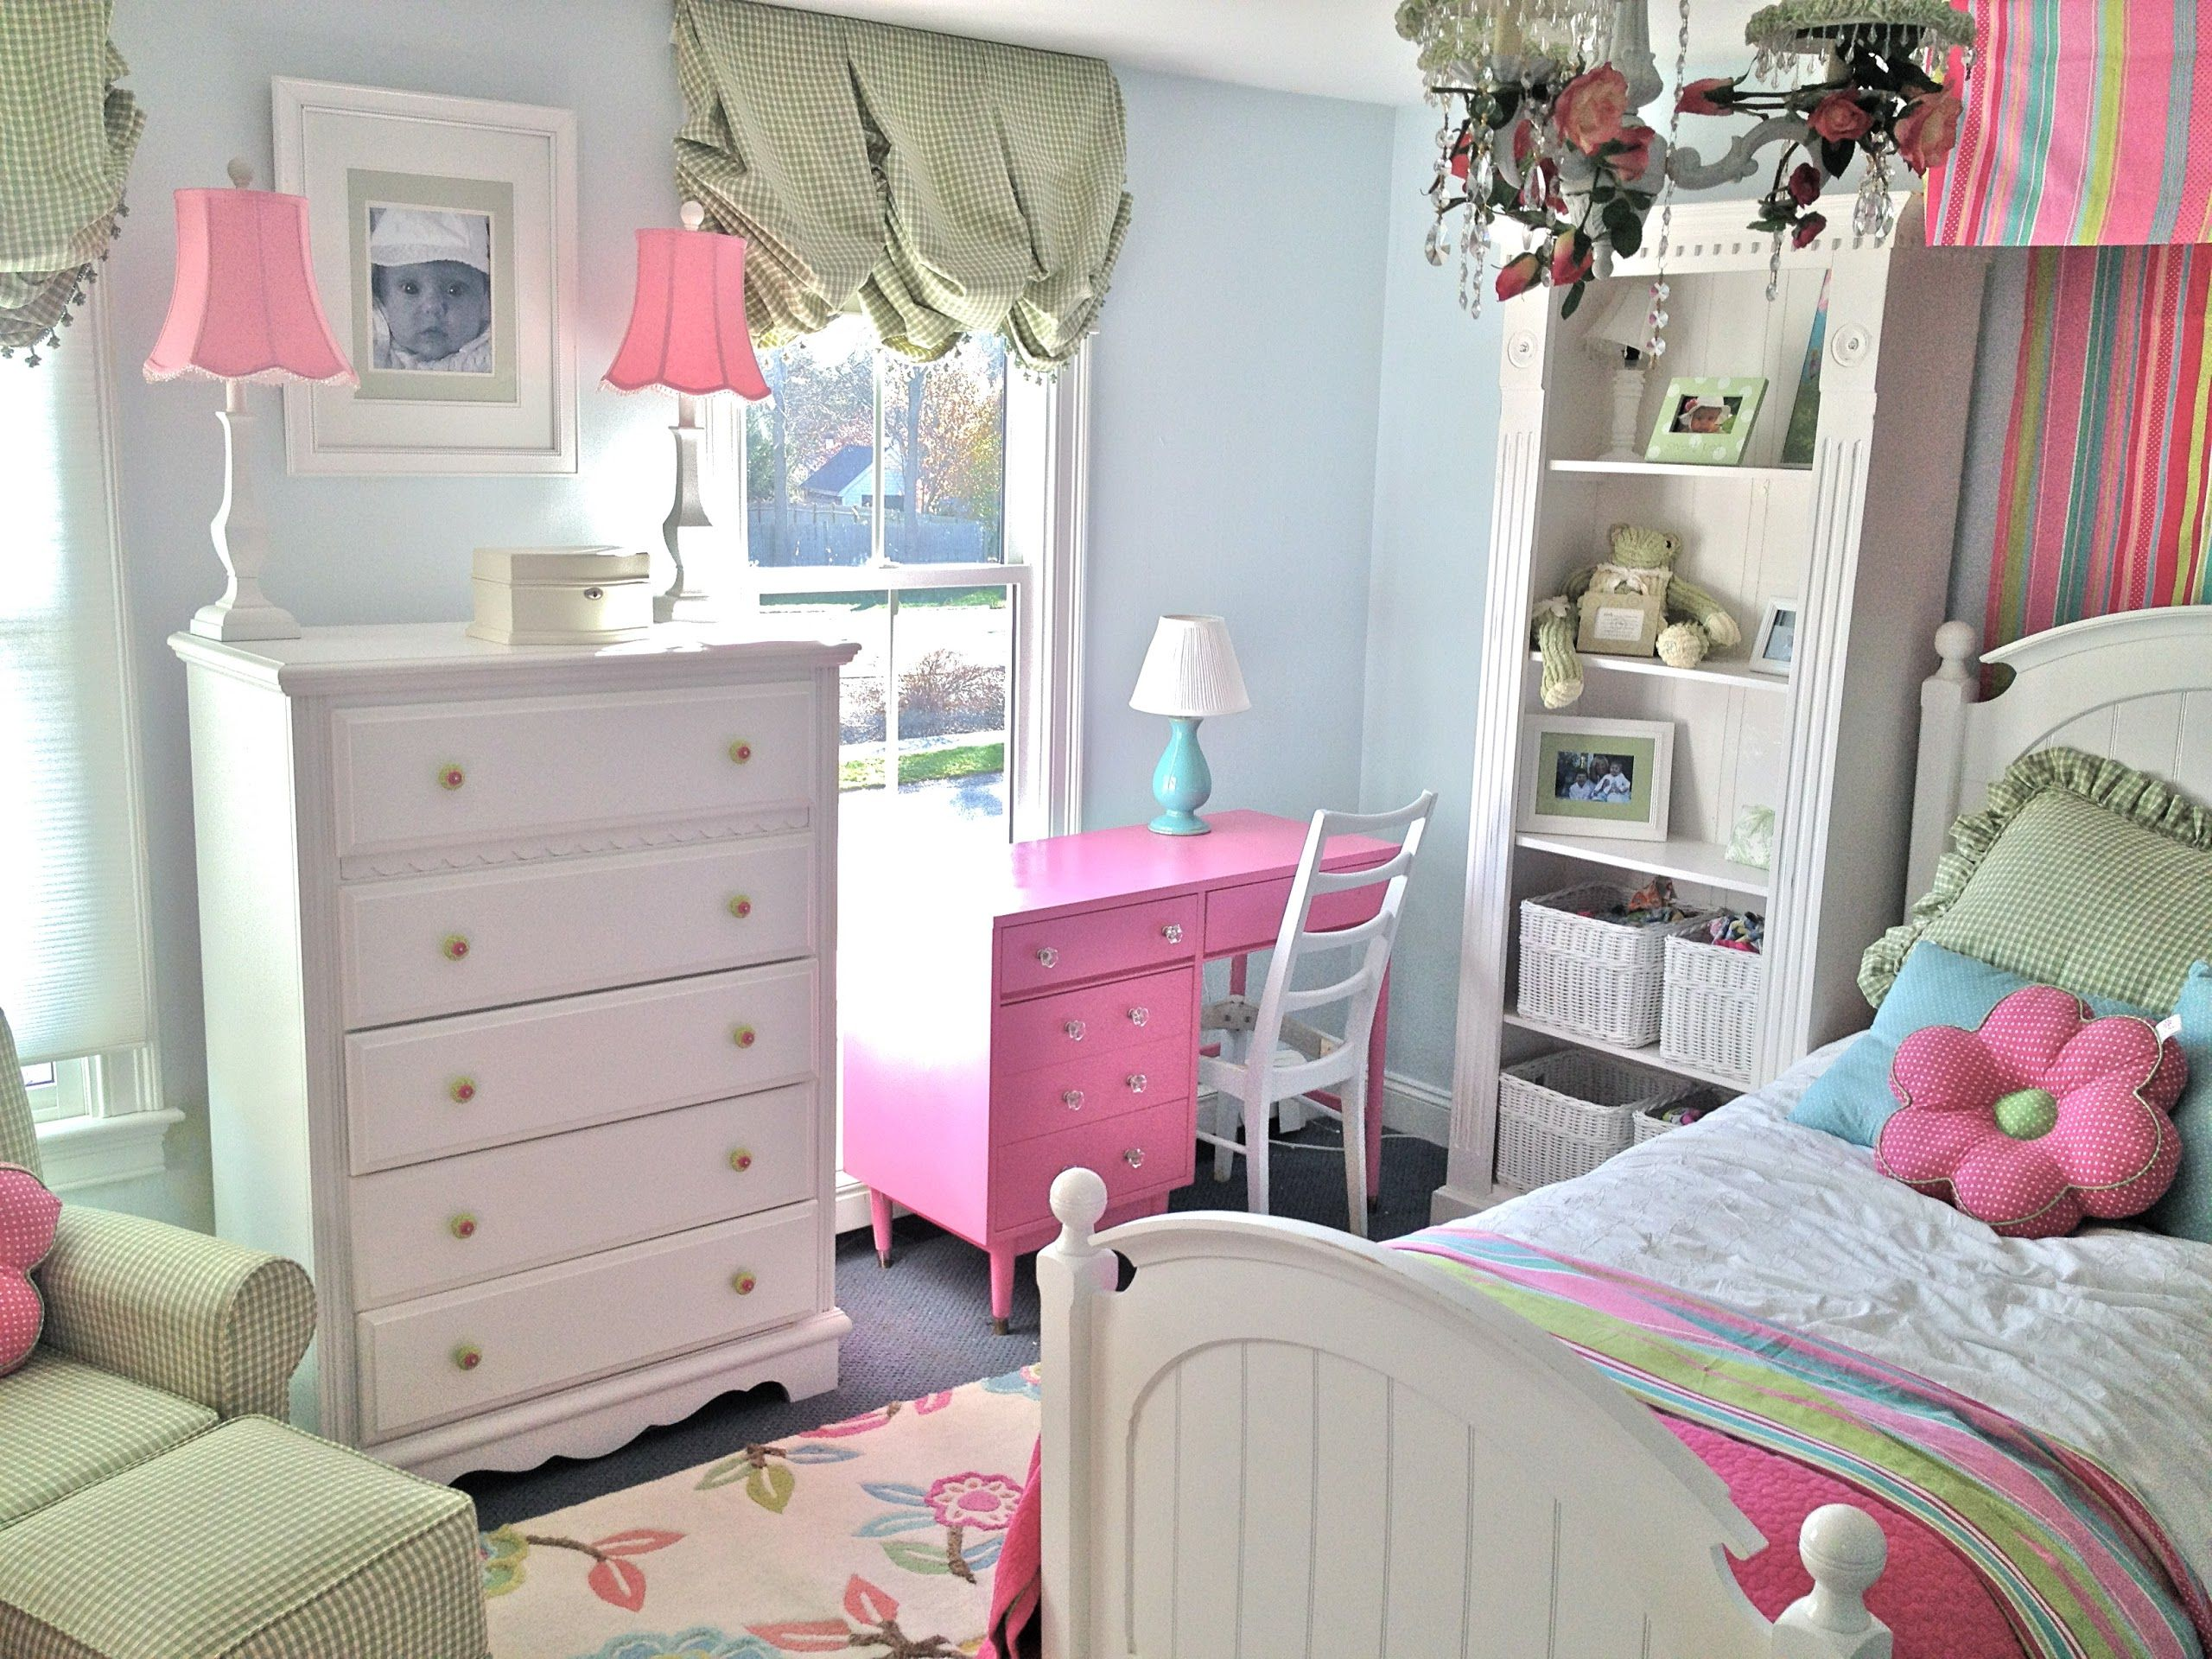 Cute bedroom ideas for teenage girls with small rooms - Pink Girls Bedrooms Teenage Girl Bedrooms Green Girls Rooms Teenage Room Little Girl Rooms Kids Bedroom Bedroom Decor Kids Rooms Small Rooms